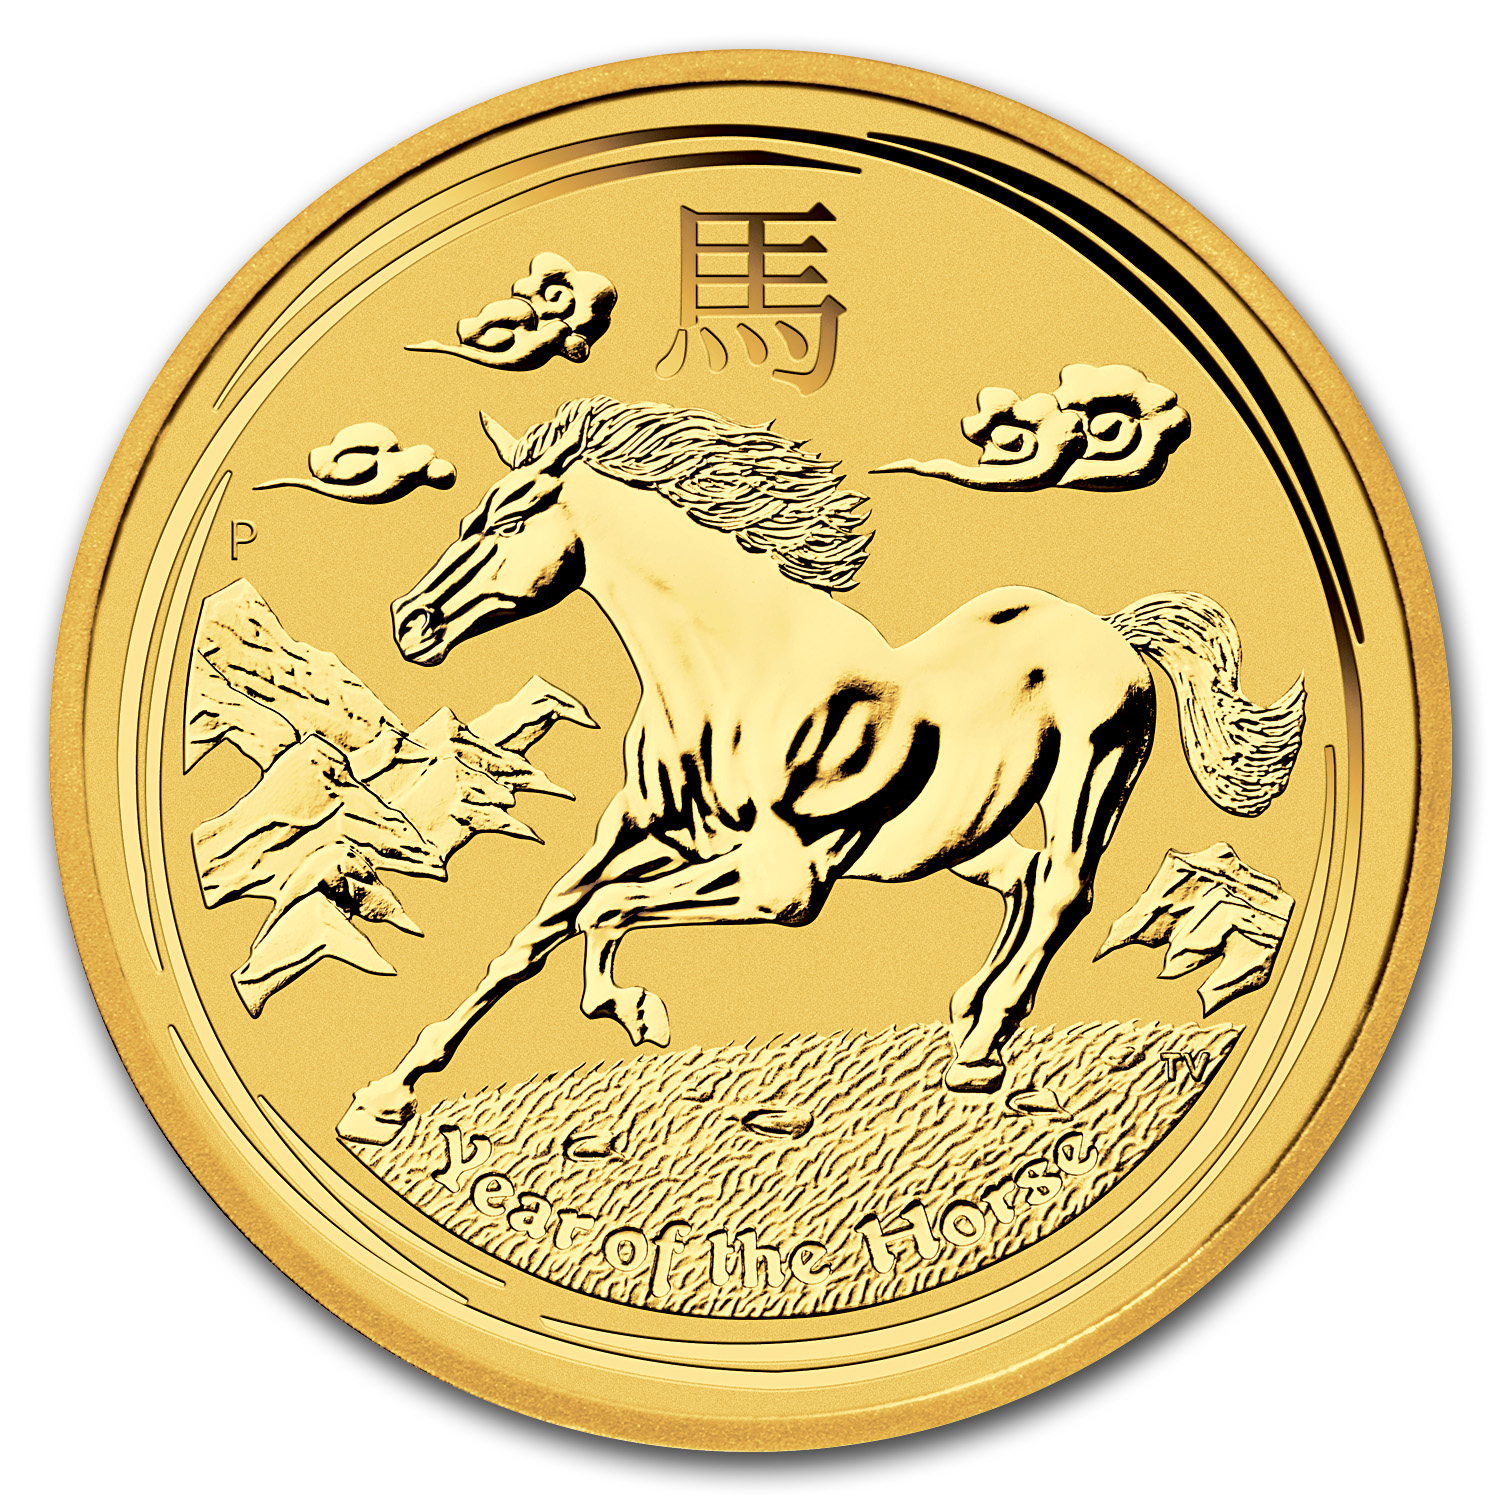 2014 Gold 1/2 oz Lunar Year of the Horse BU (Series II)